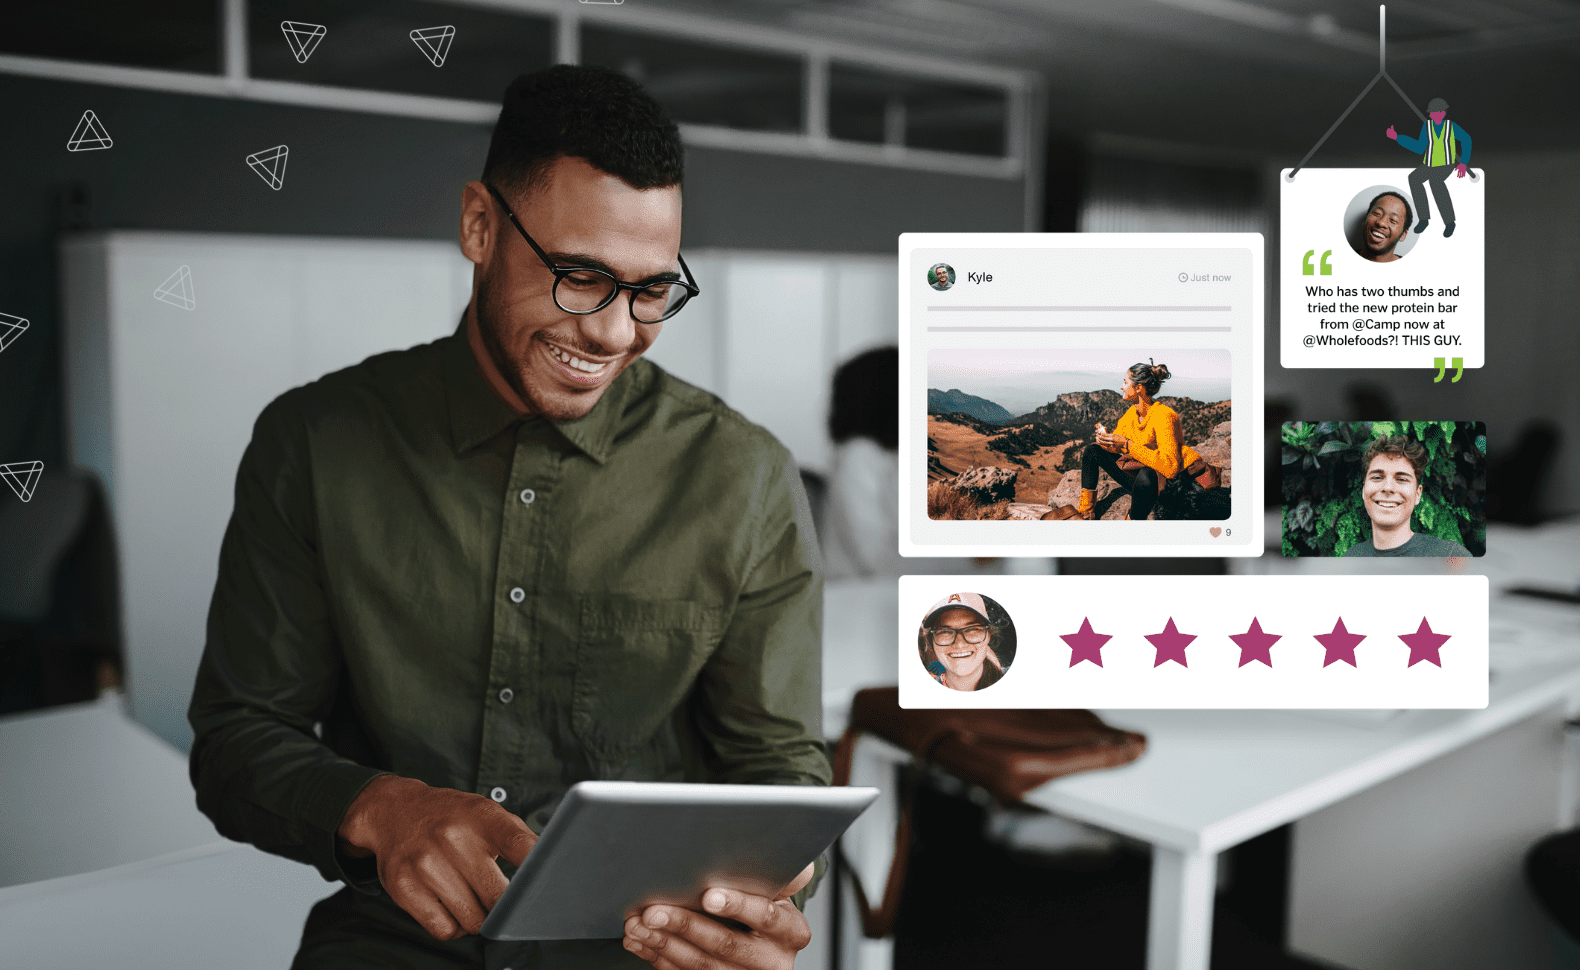 5 Brands That Are Winning With an Online Brand Community